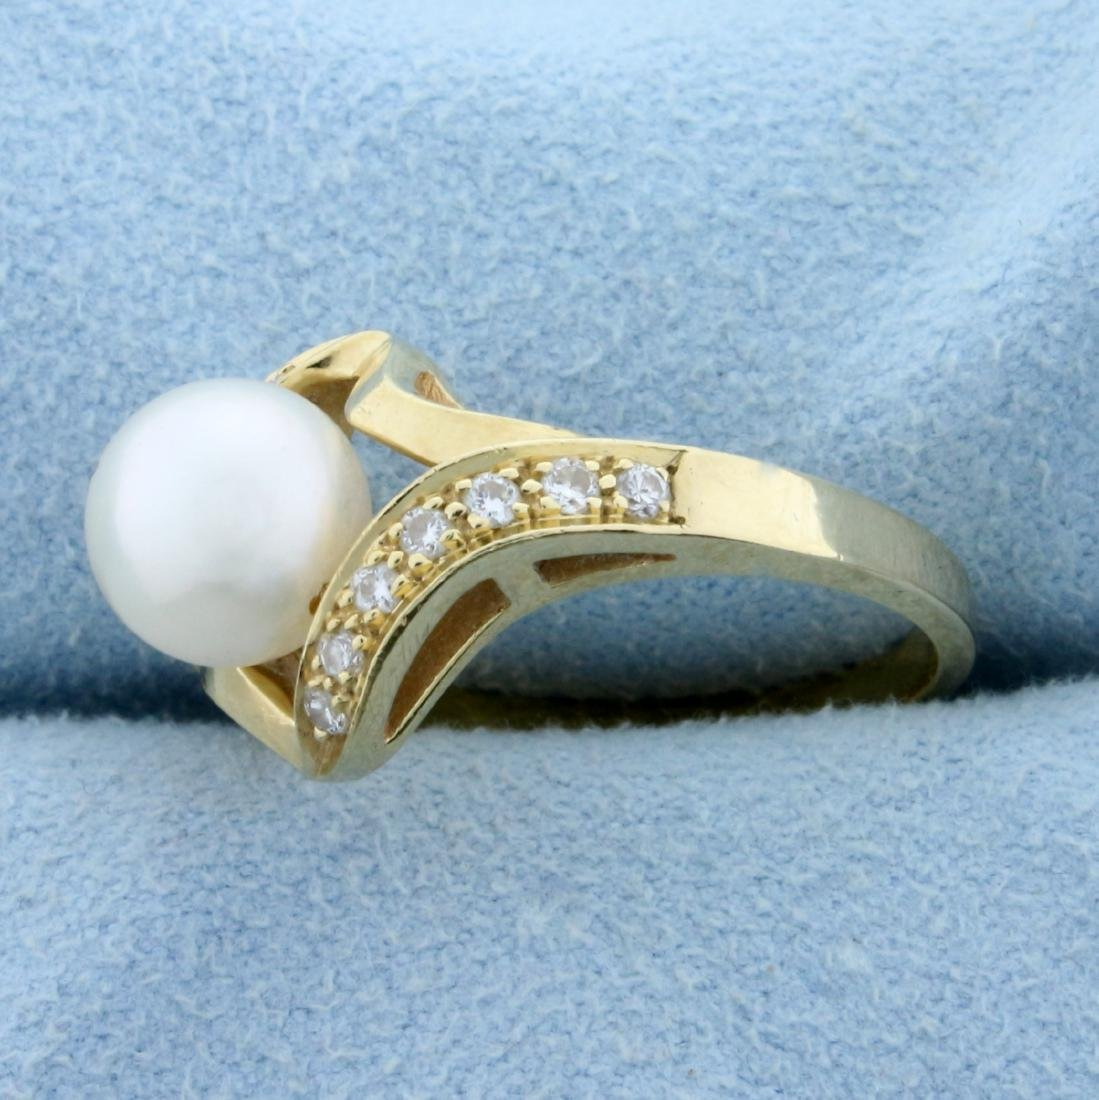 8mm Cultured Akoya Pearl and Diamond Ring in 14K Yellow - 2